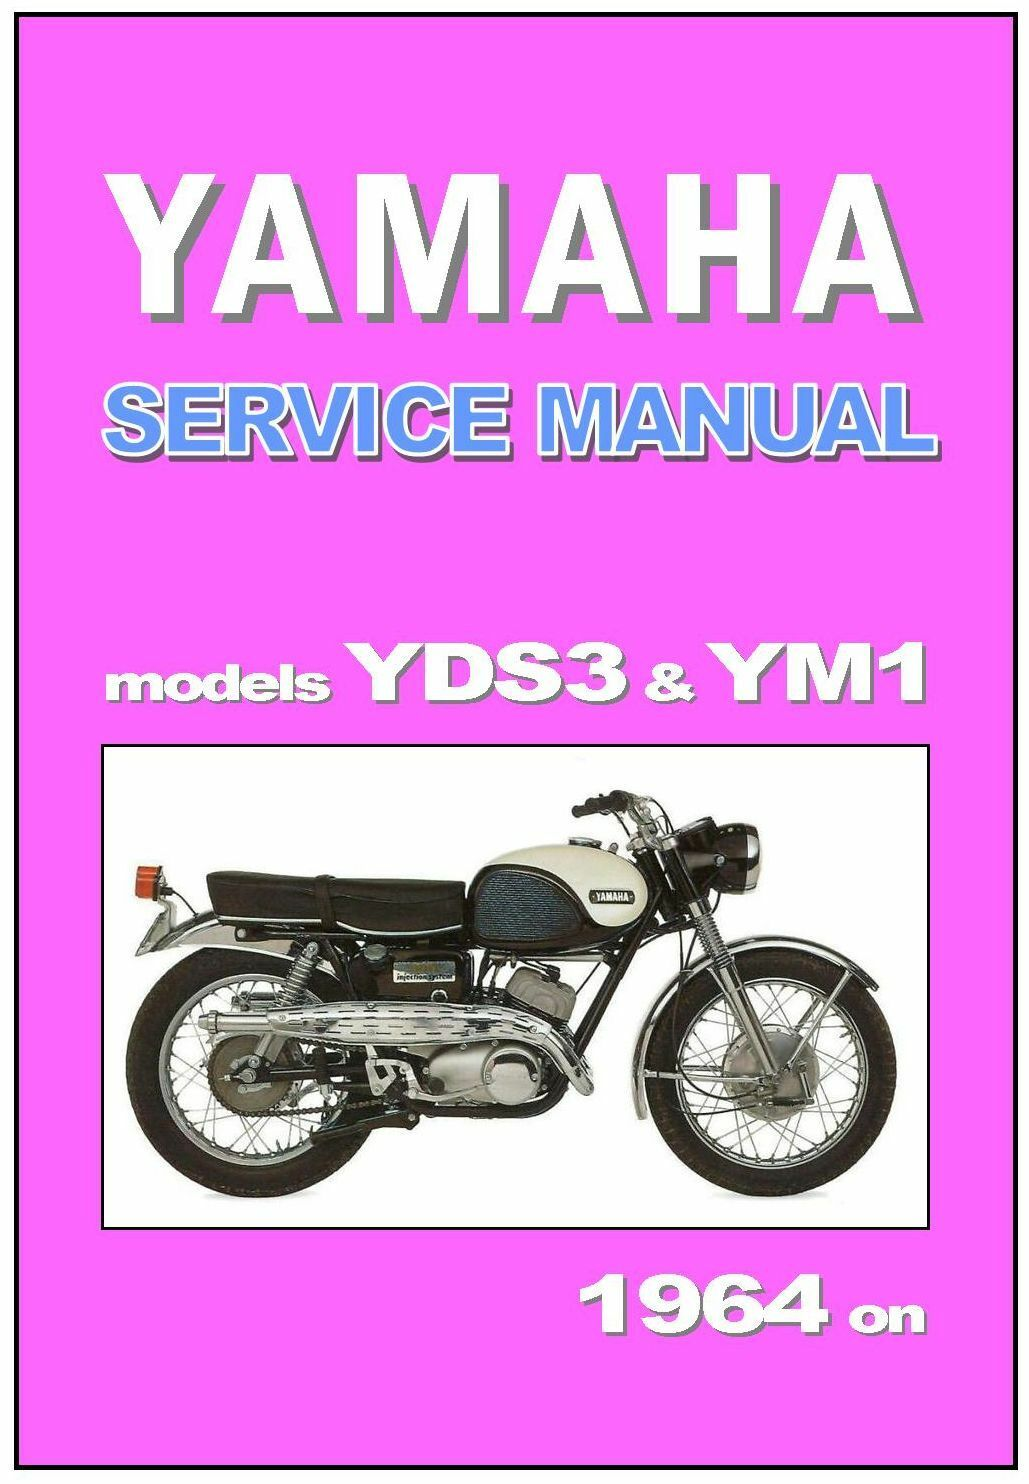 YAMAHA Workshop Manual YDS3 YDS3C and YM1 for 1964 1965 and 1966 Service  Repair | eBay